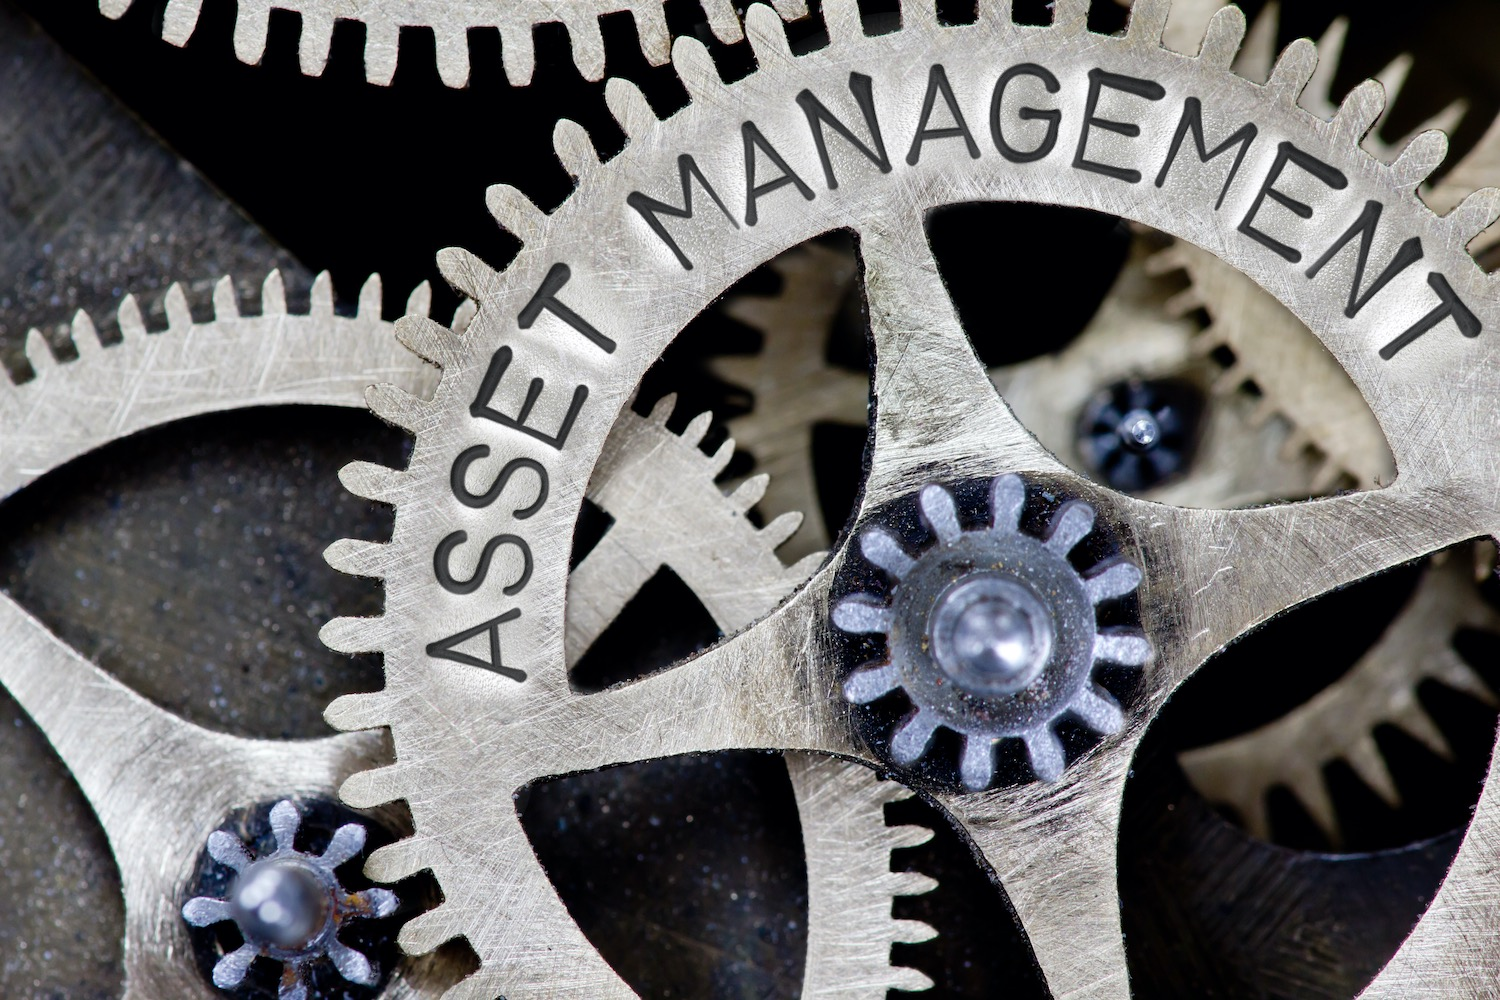 """Asset Management"" written on one of the machine cog wheels"